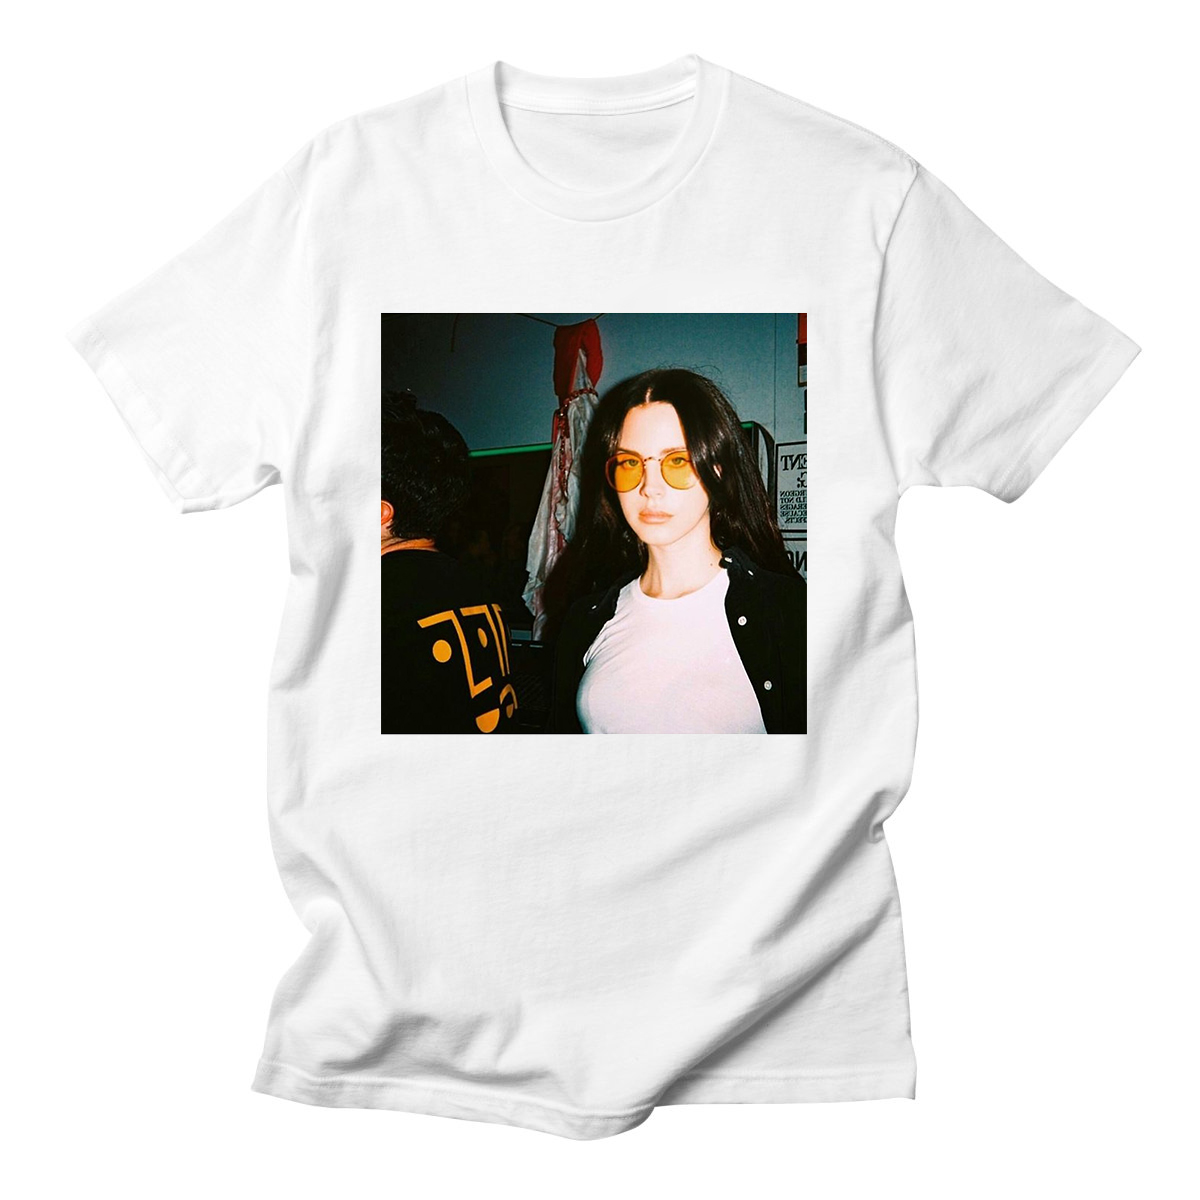 Lana Del Rey Letter Print Casual Funny Shirt For Lady White Top Tee High Quality O-Neck Woman Summer  Plus Size Women